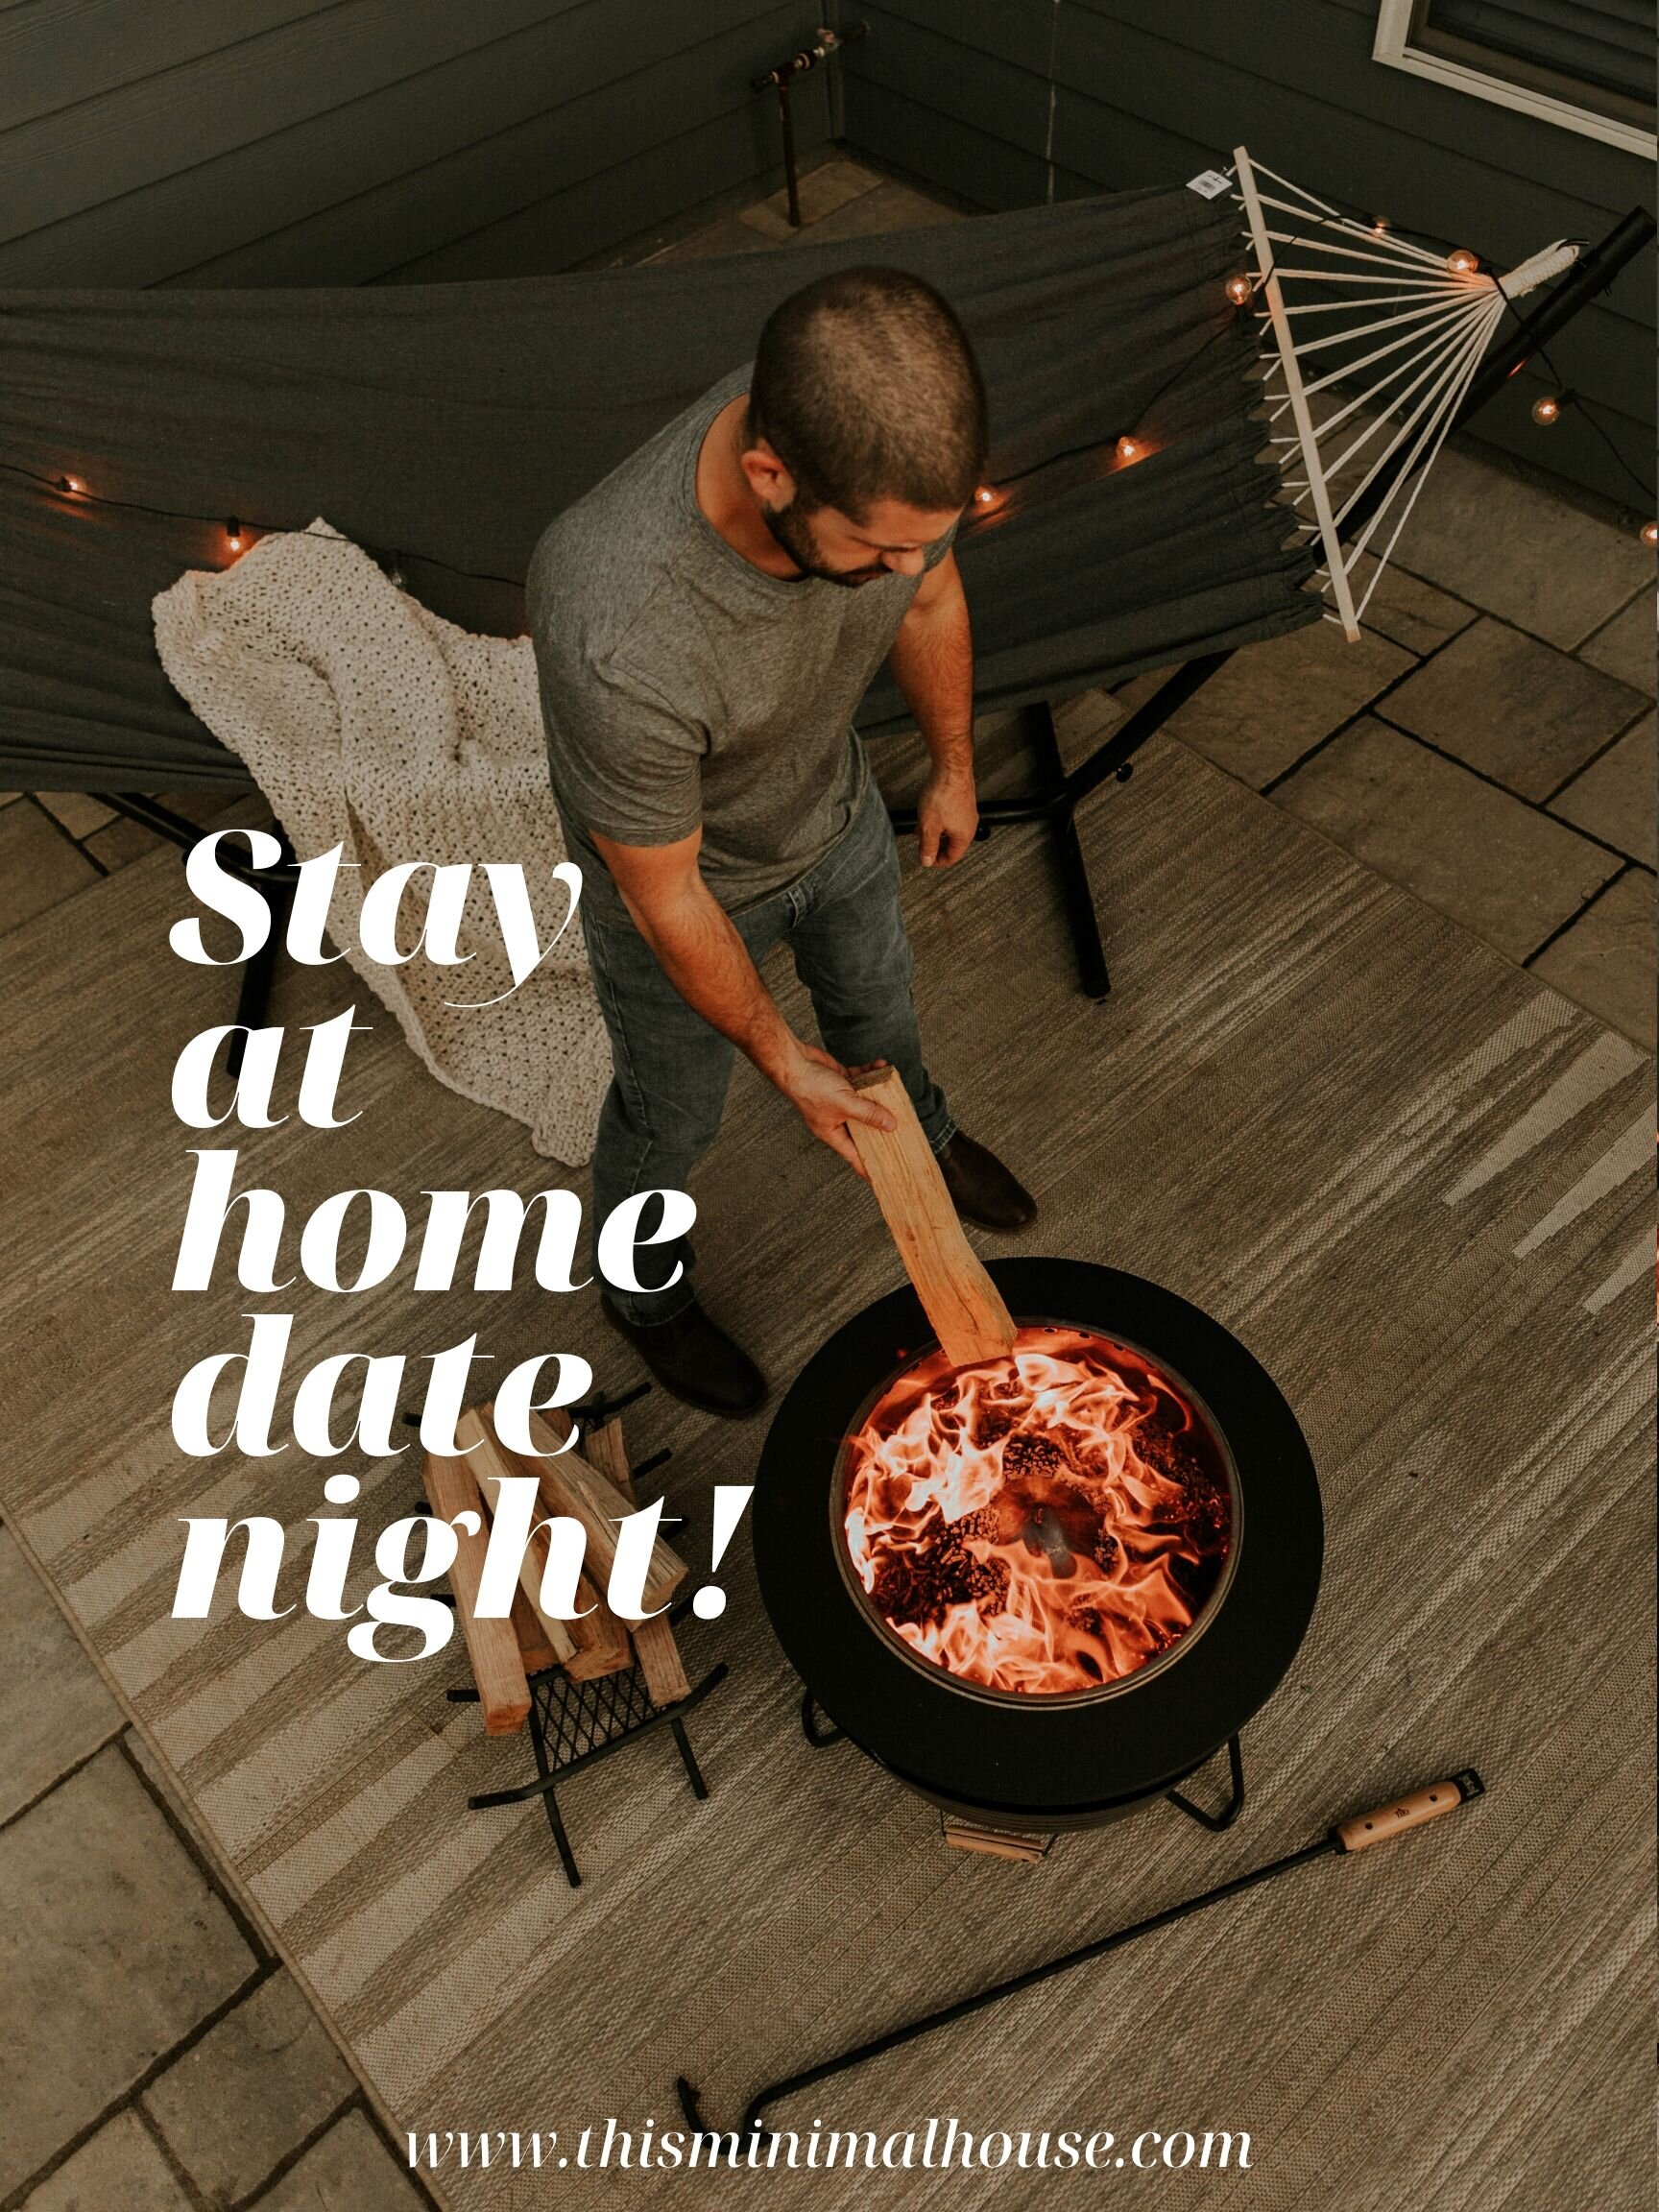 Date night ideas for your backyard